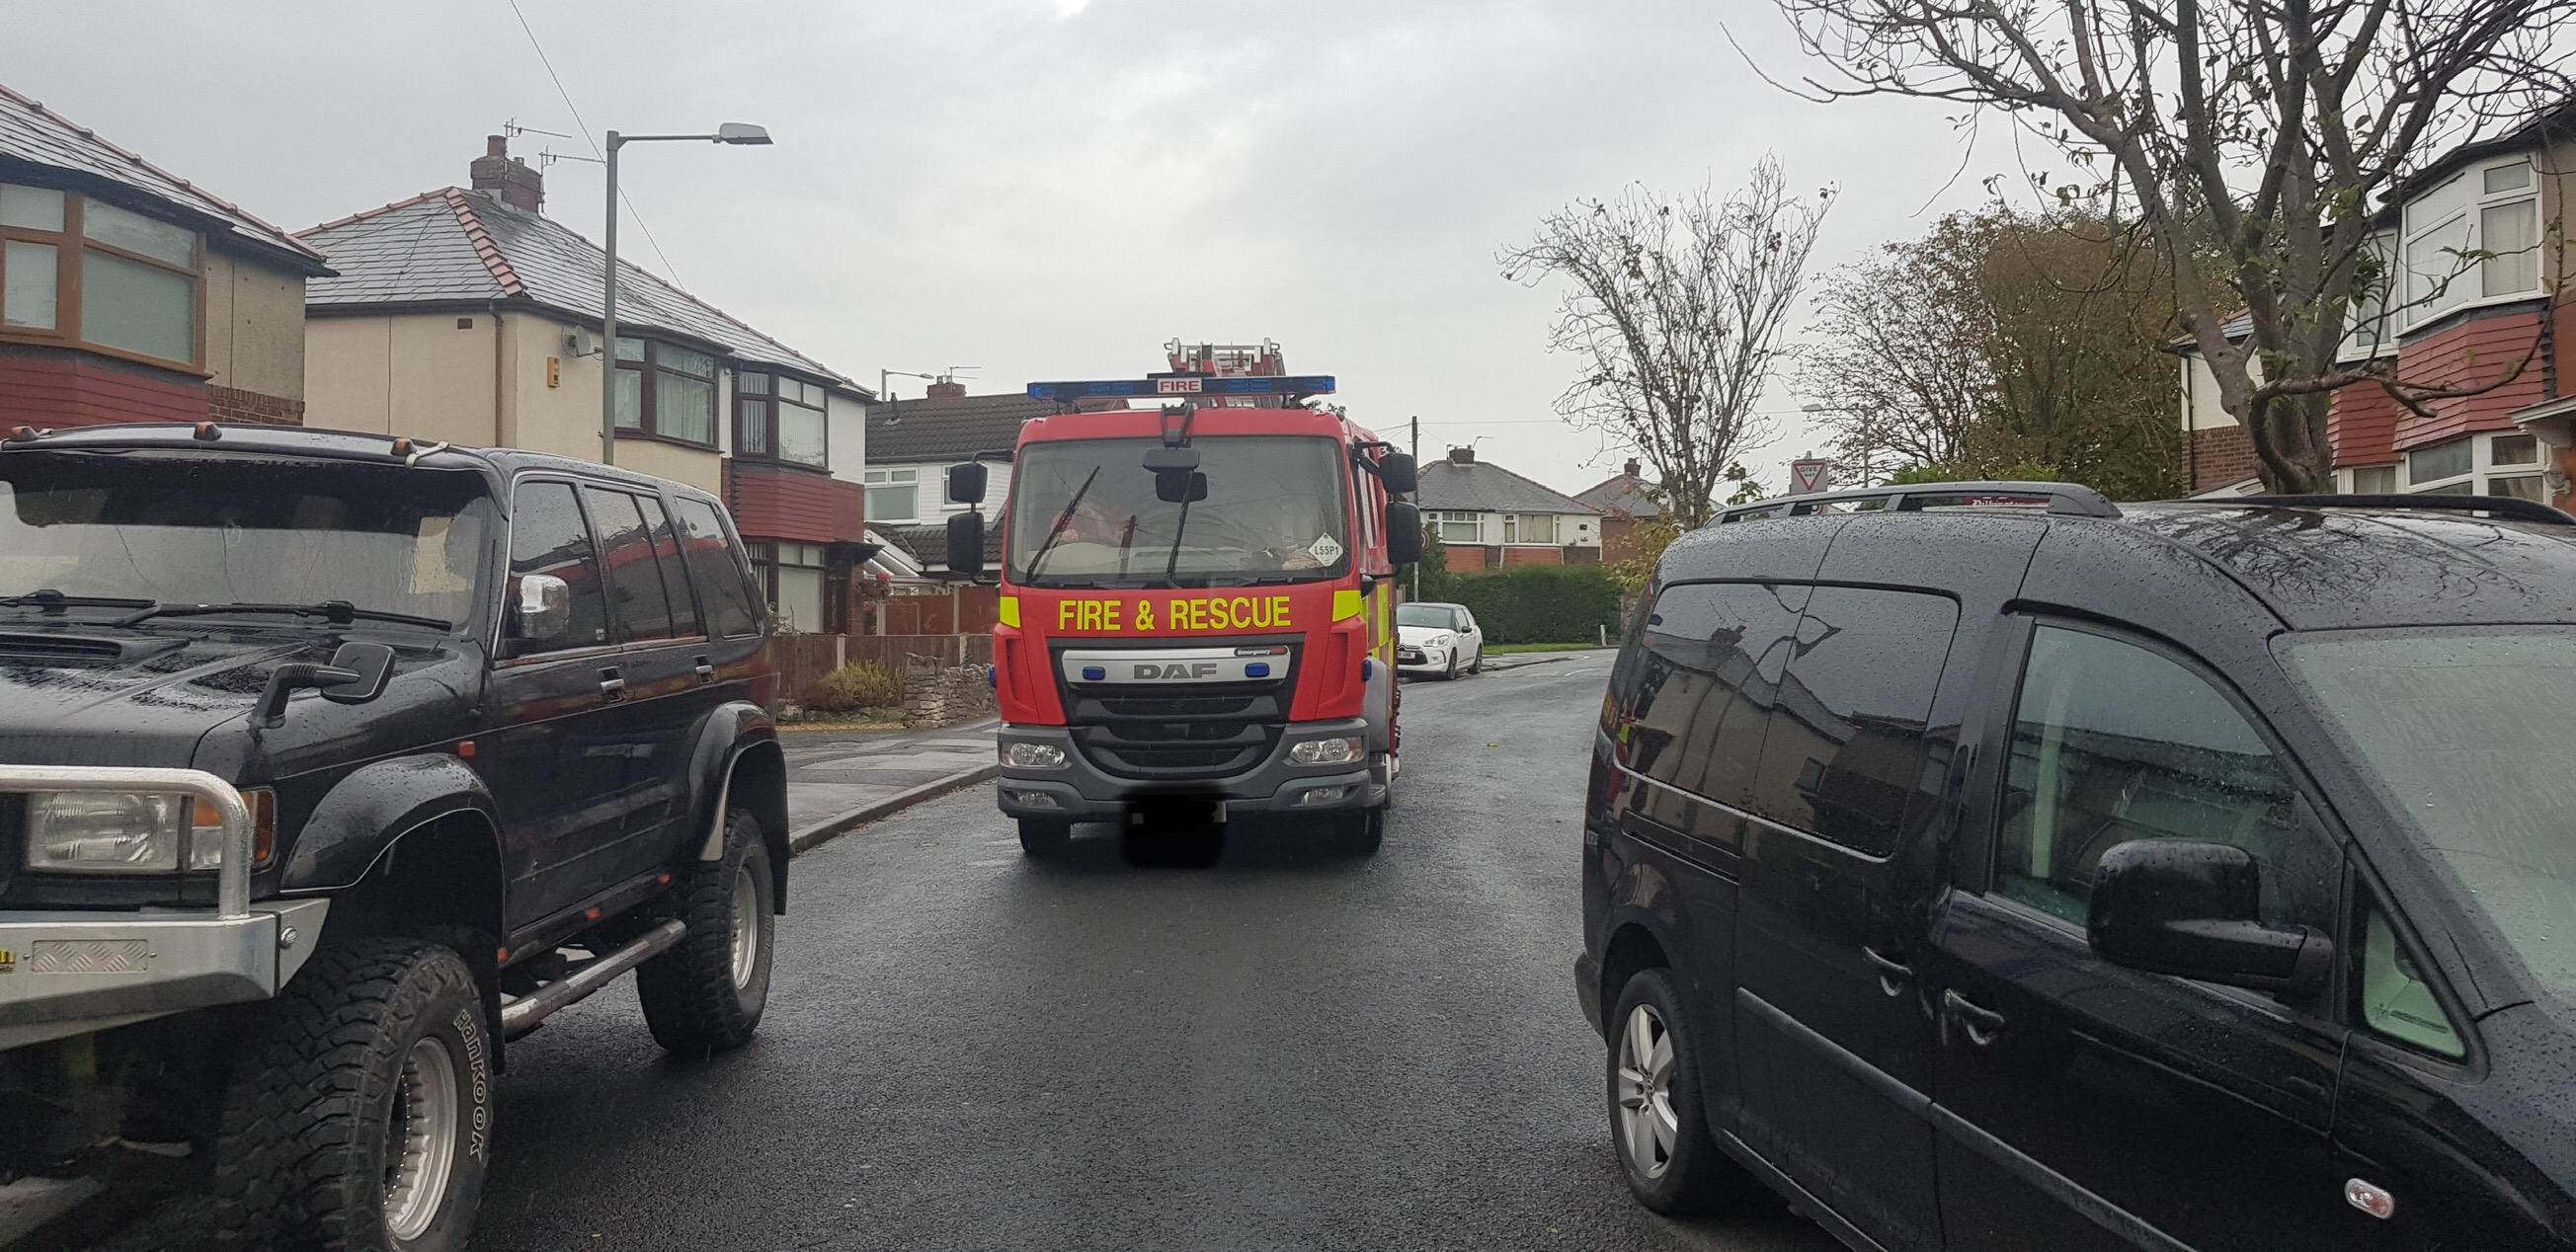 image showing fire engine unable to pass down a street between two cars